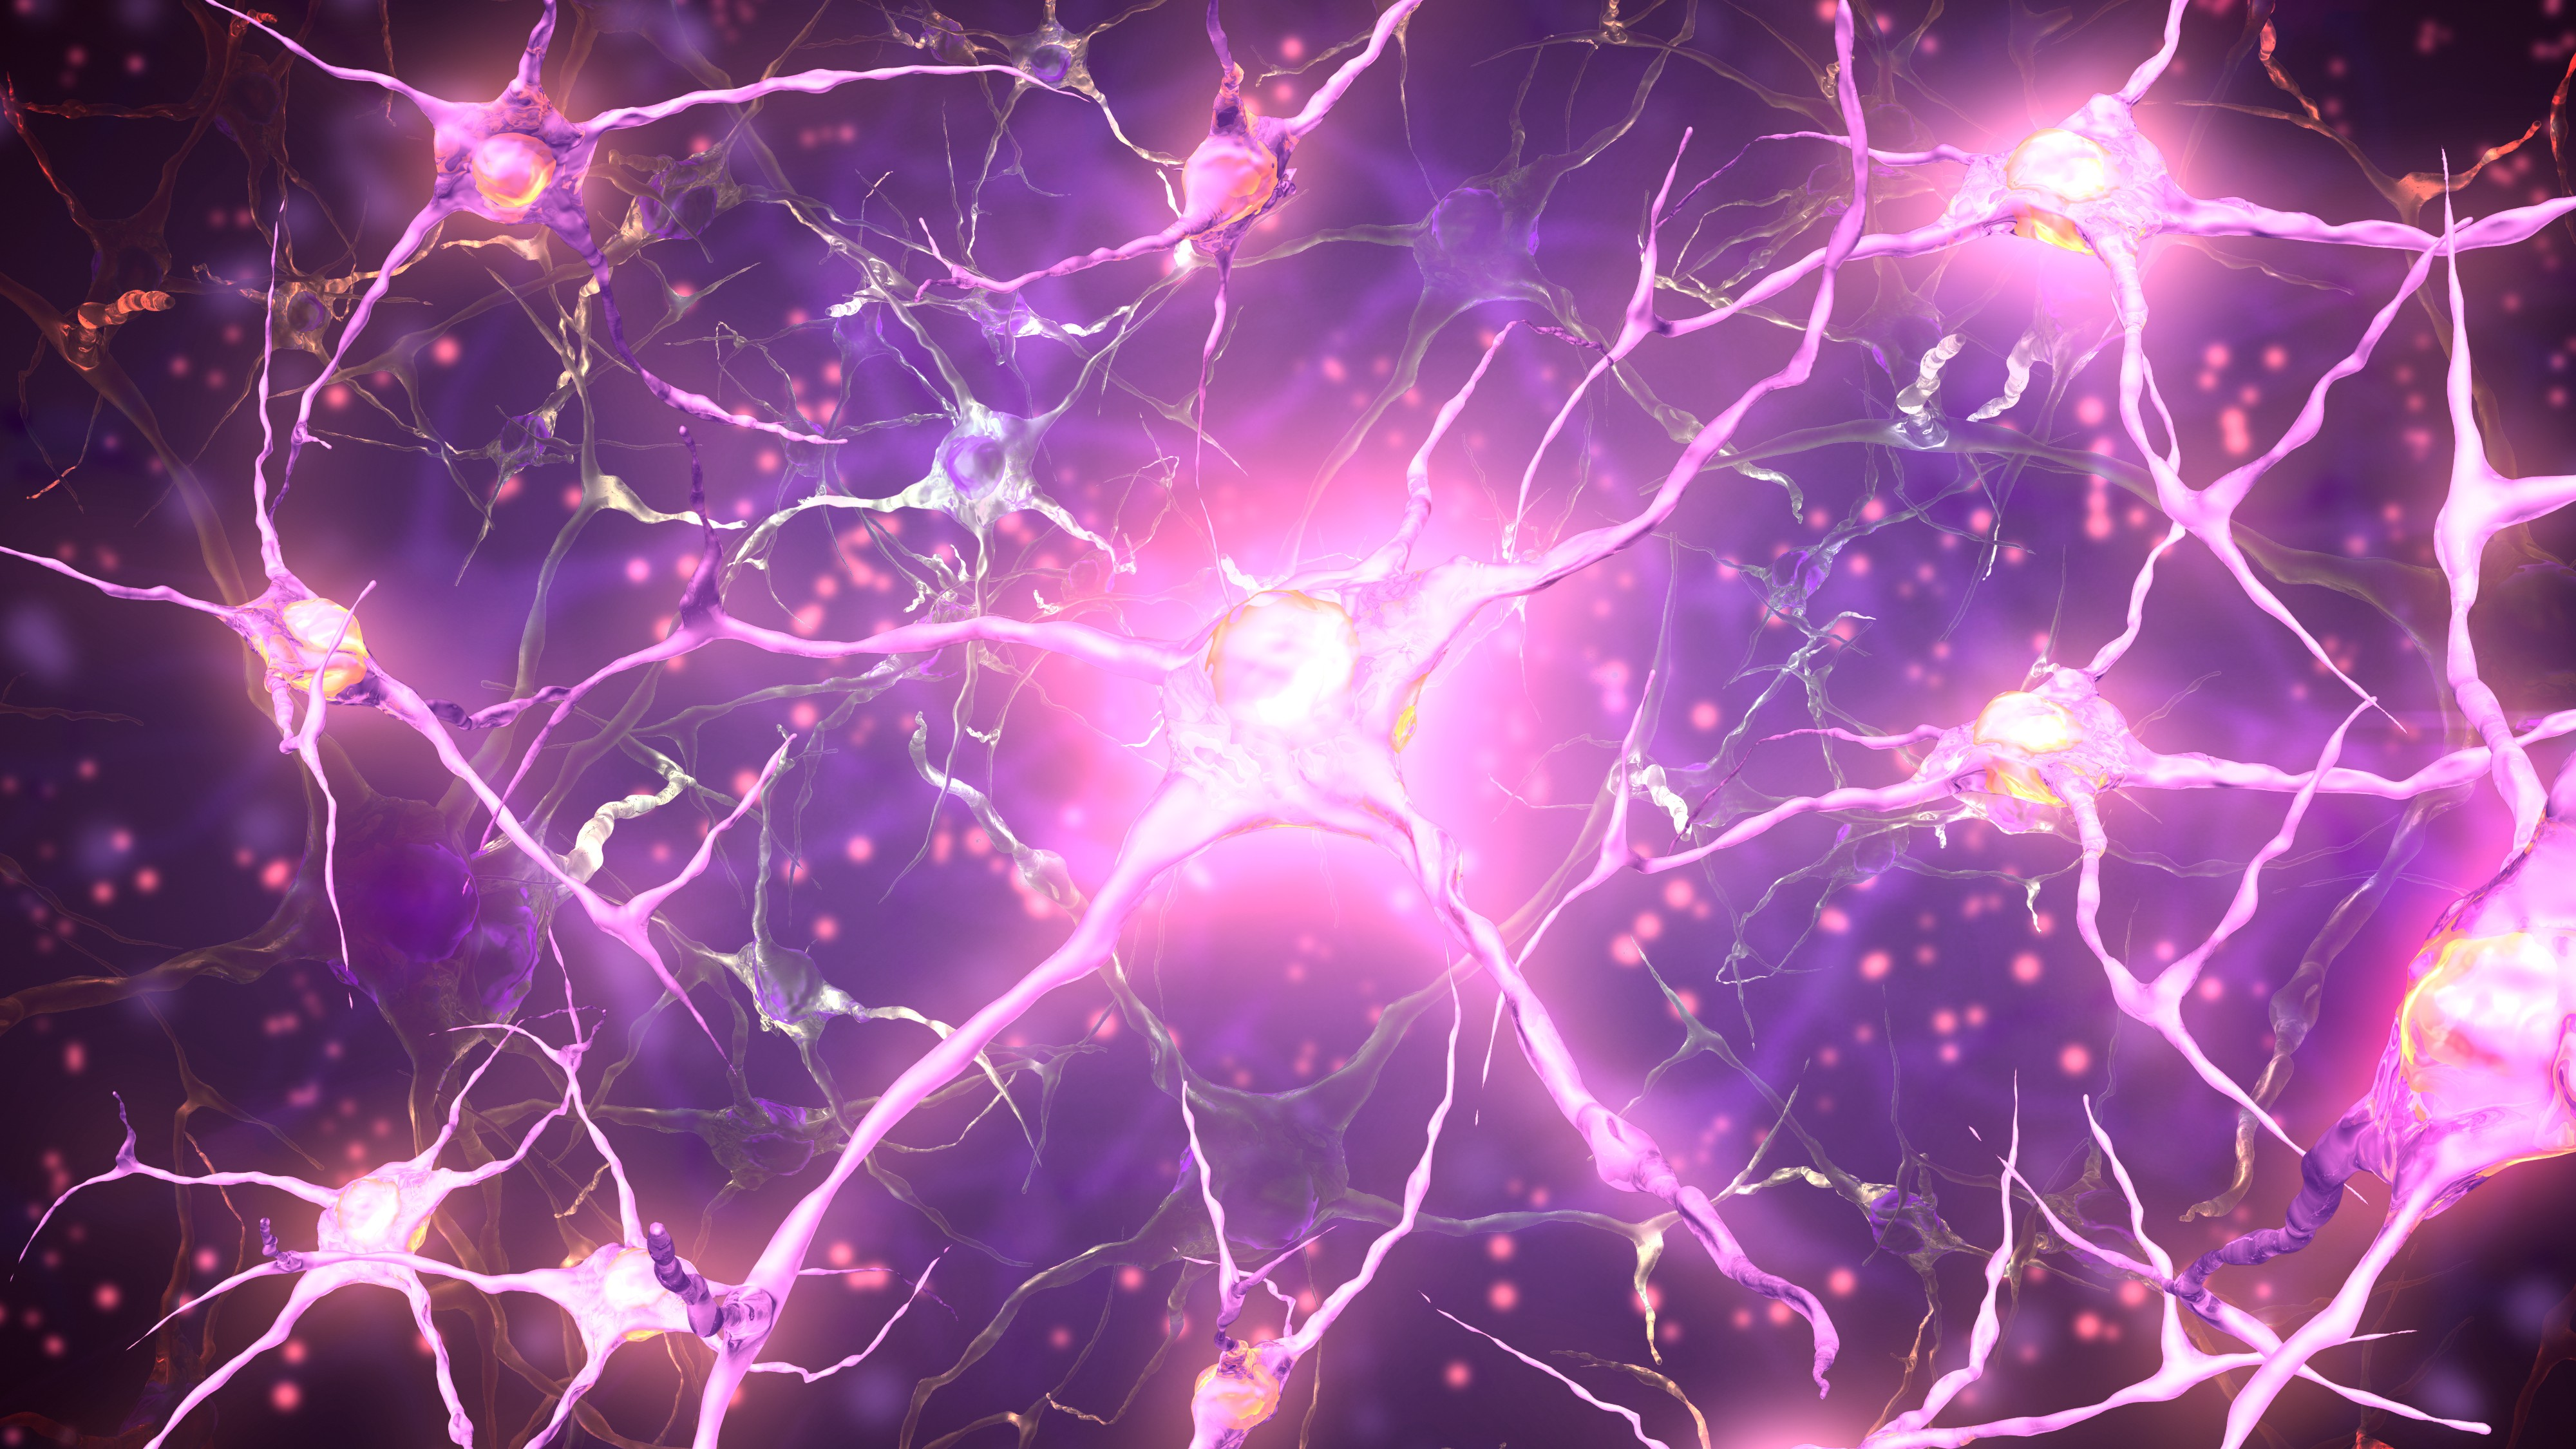 There Could Be Hope for Parkinson's Therapies in Neural Stem Cells